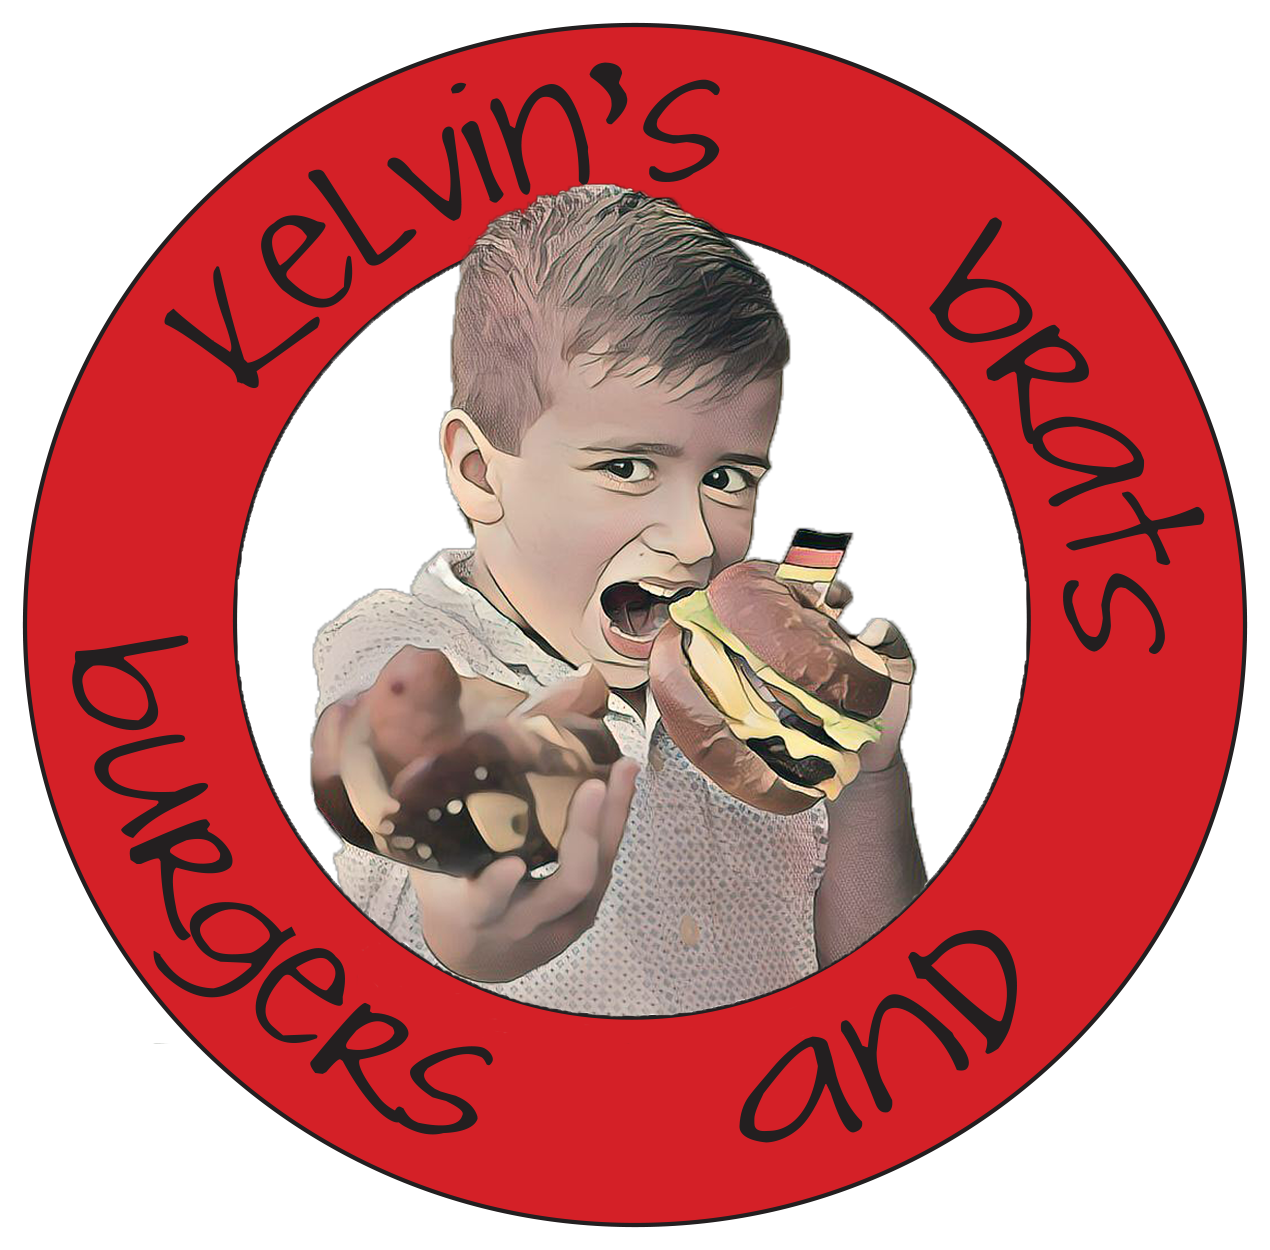 Kelvins Burgers and Brats